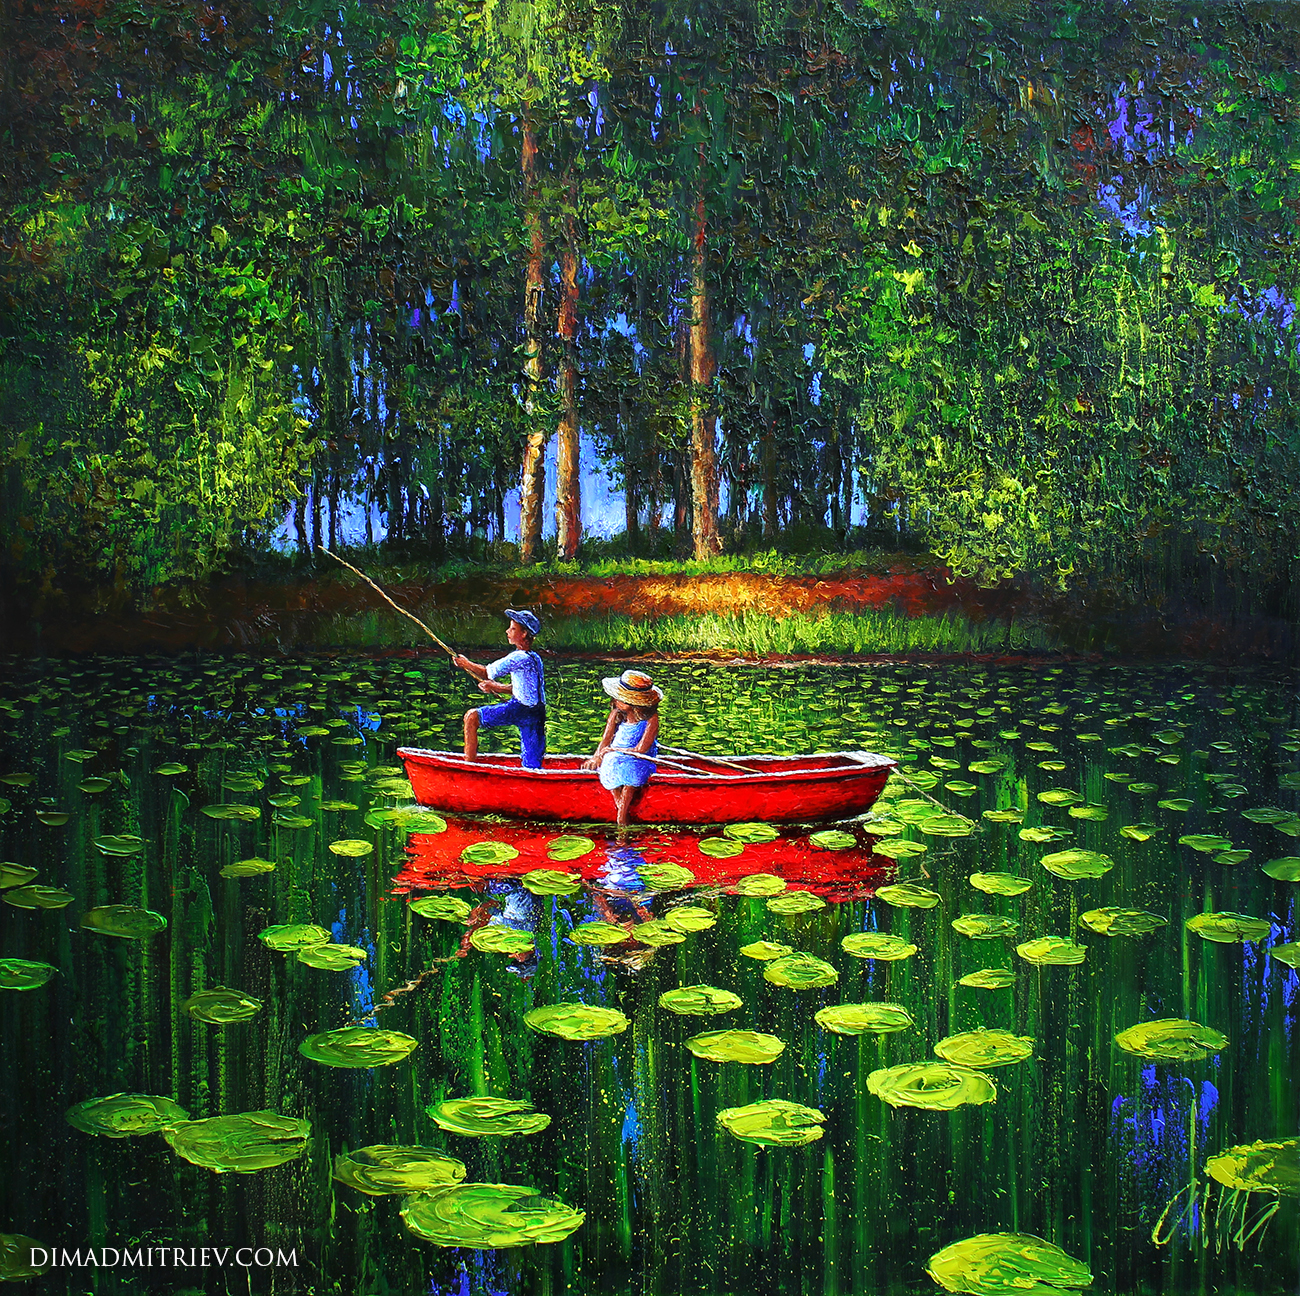 Rest at Midday : Dima Dmitriev